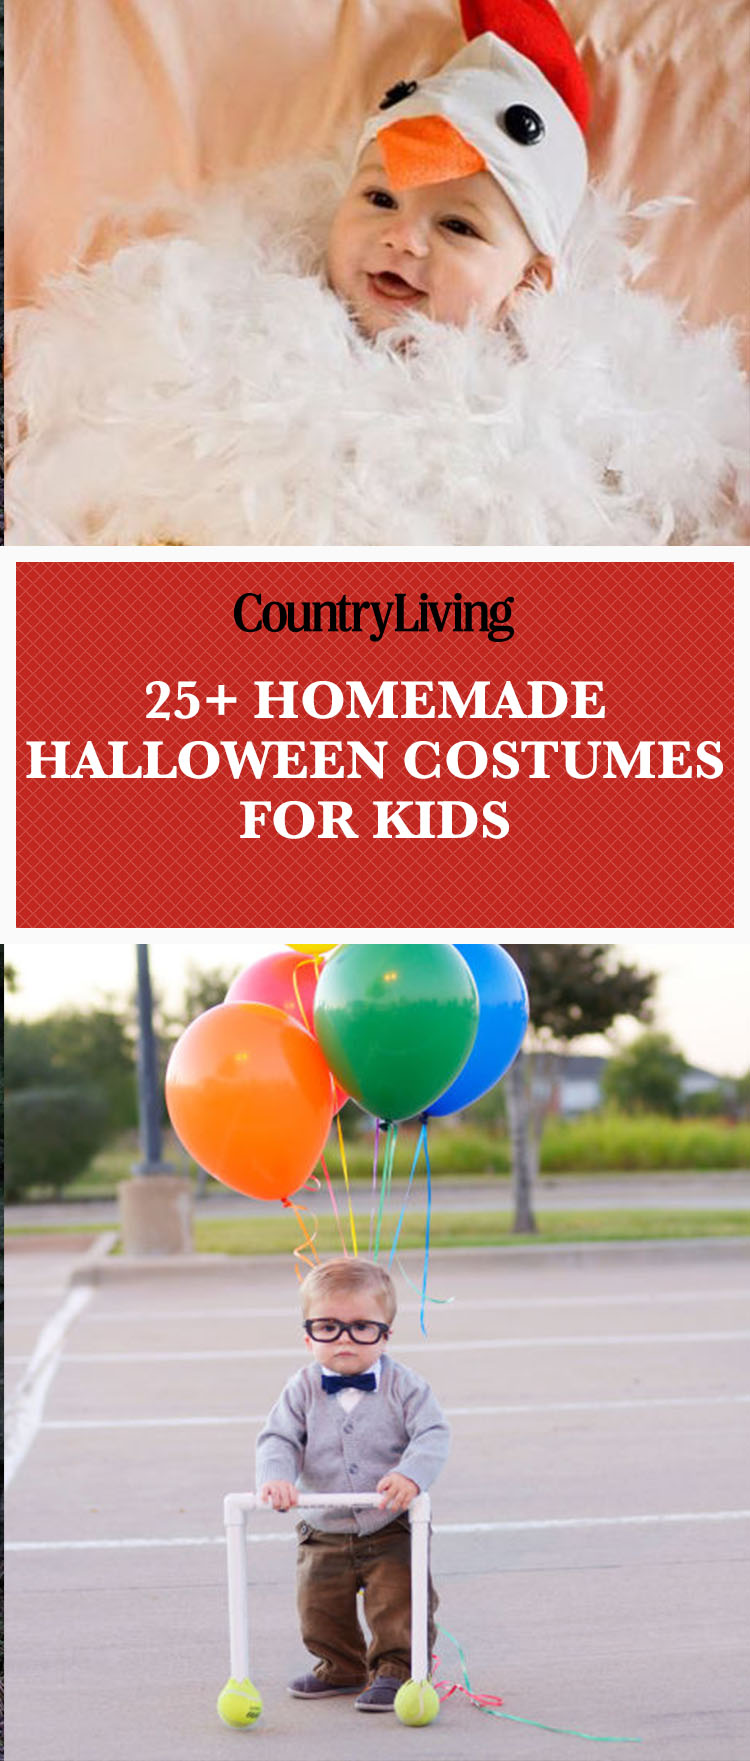 62 homemade halloween costumes for kids easy diy ideas kids halloween costumes